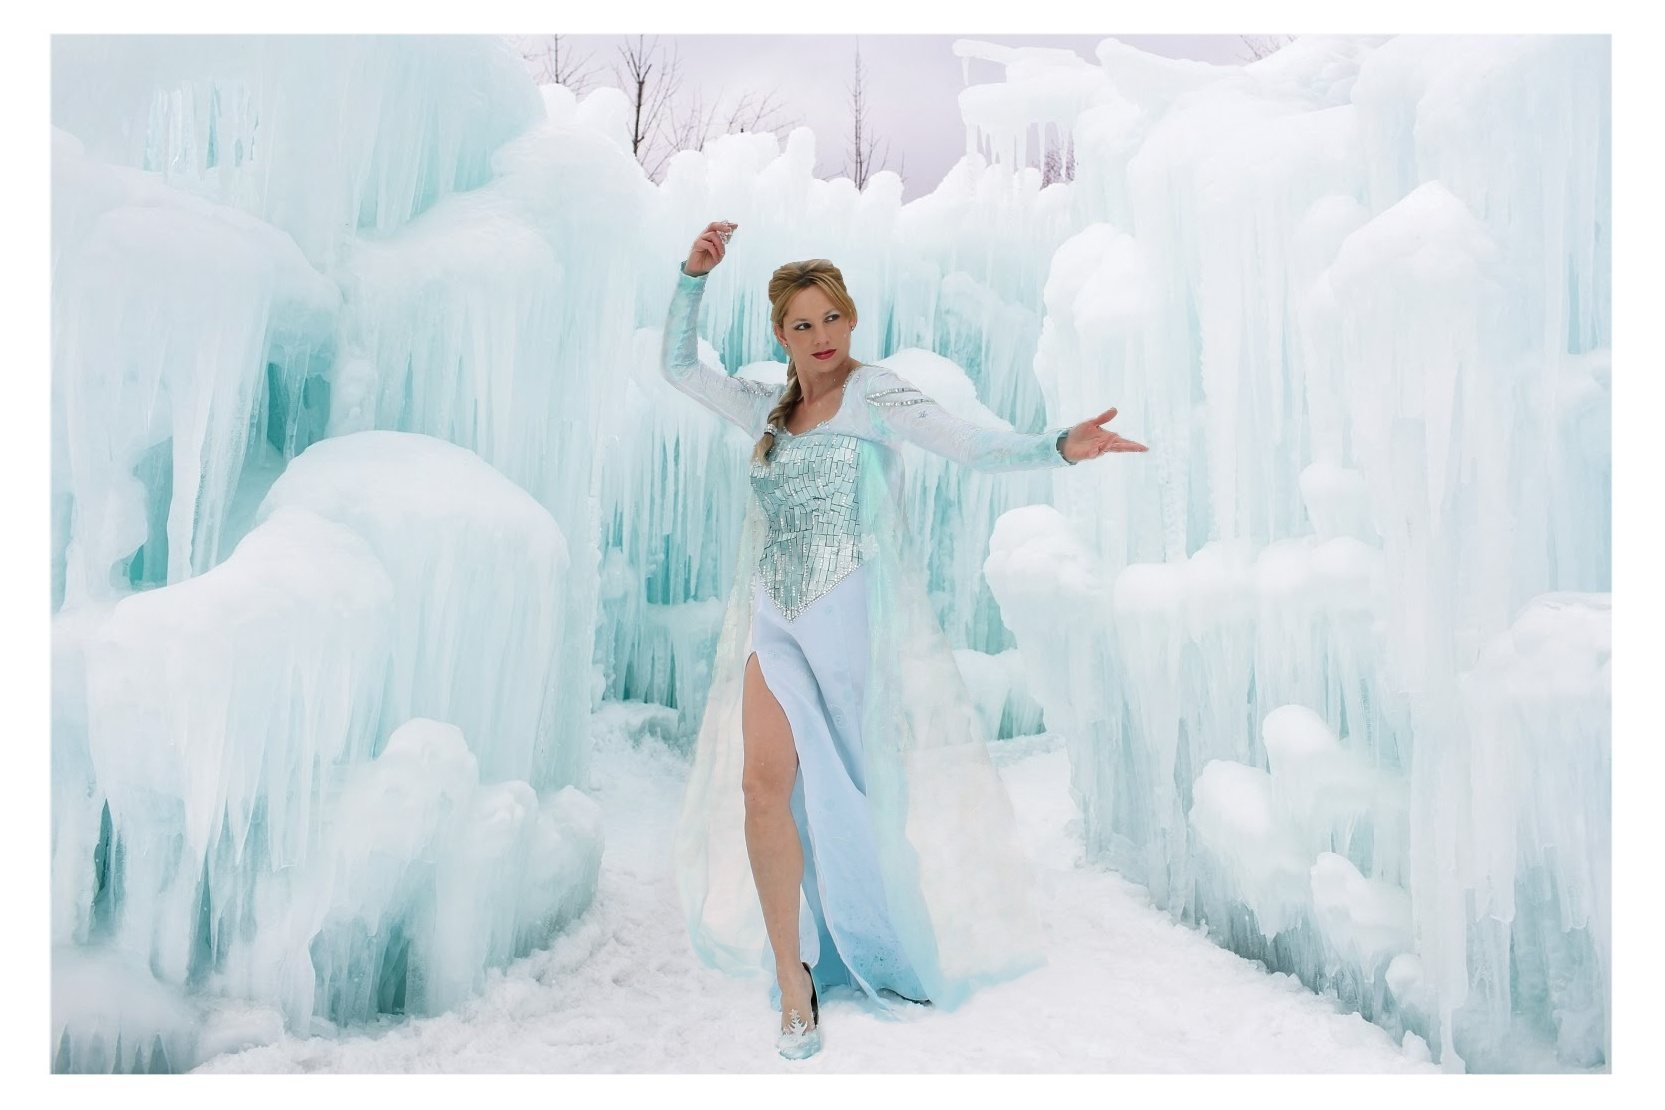 Frozen's Elsa Cosplay by CosplayCandy